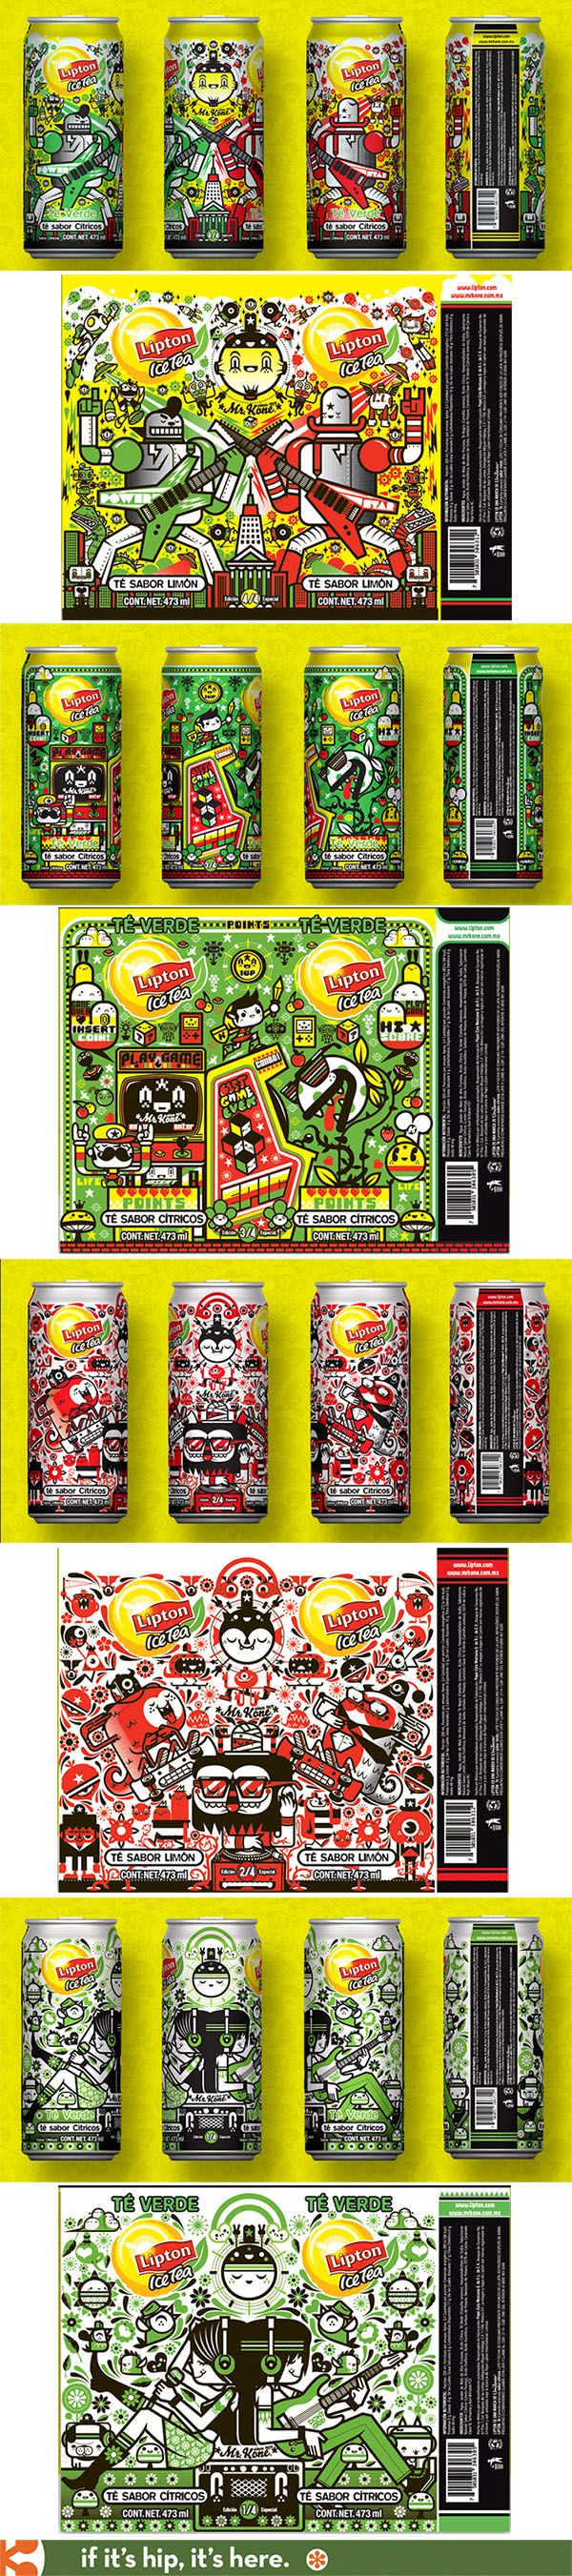 Fabulously illustrated Lipton Ice Tea cans by Mr. Kone to introduce it to the Mexican market.